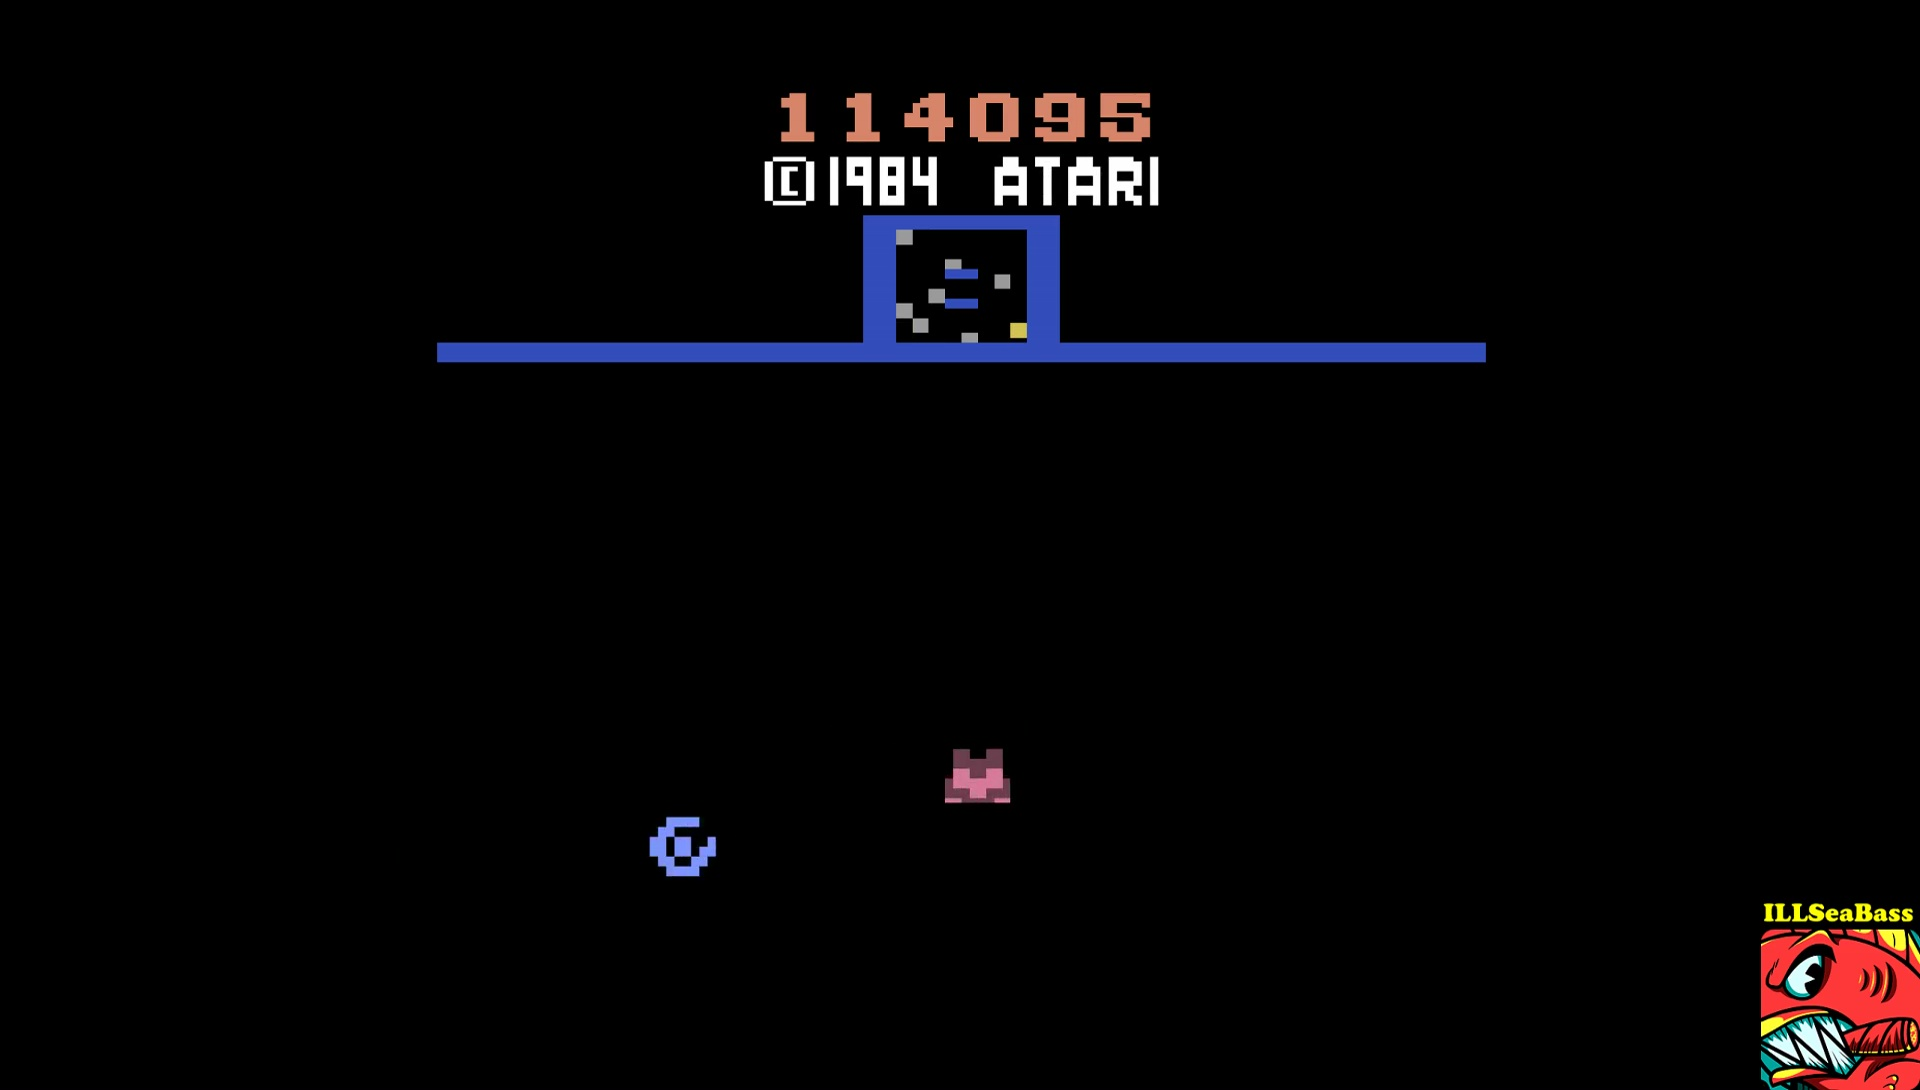 ILLSeaBass: Sinistar (Atari 2600 Emulated) 114,095 points on 2017-05-21 22:35:44